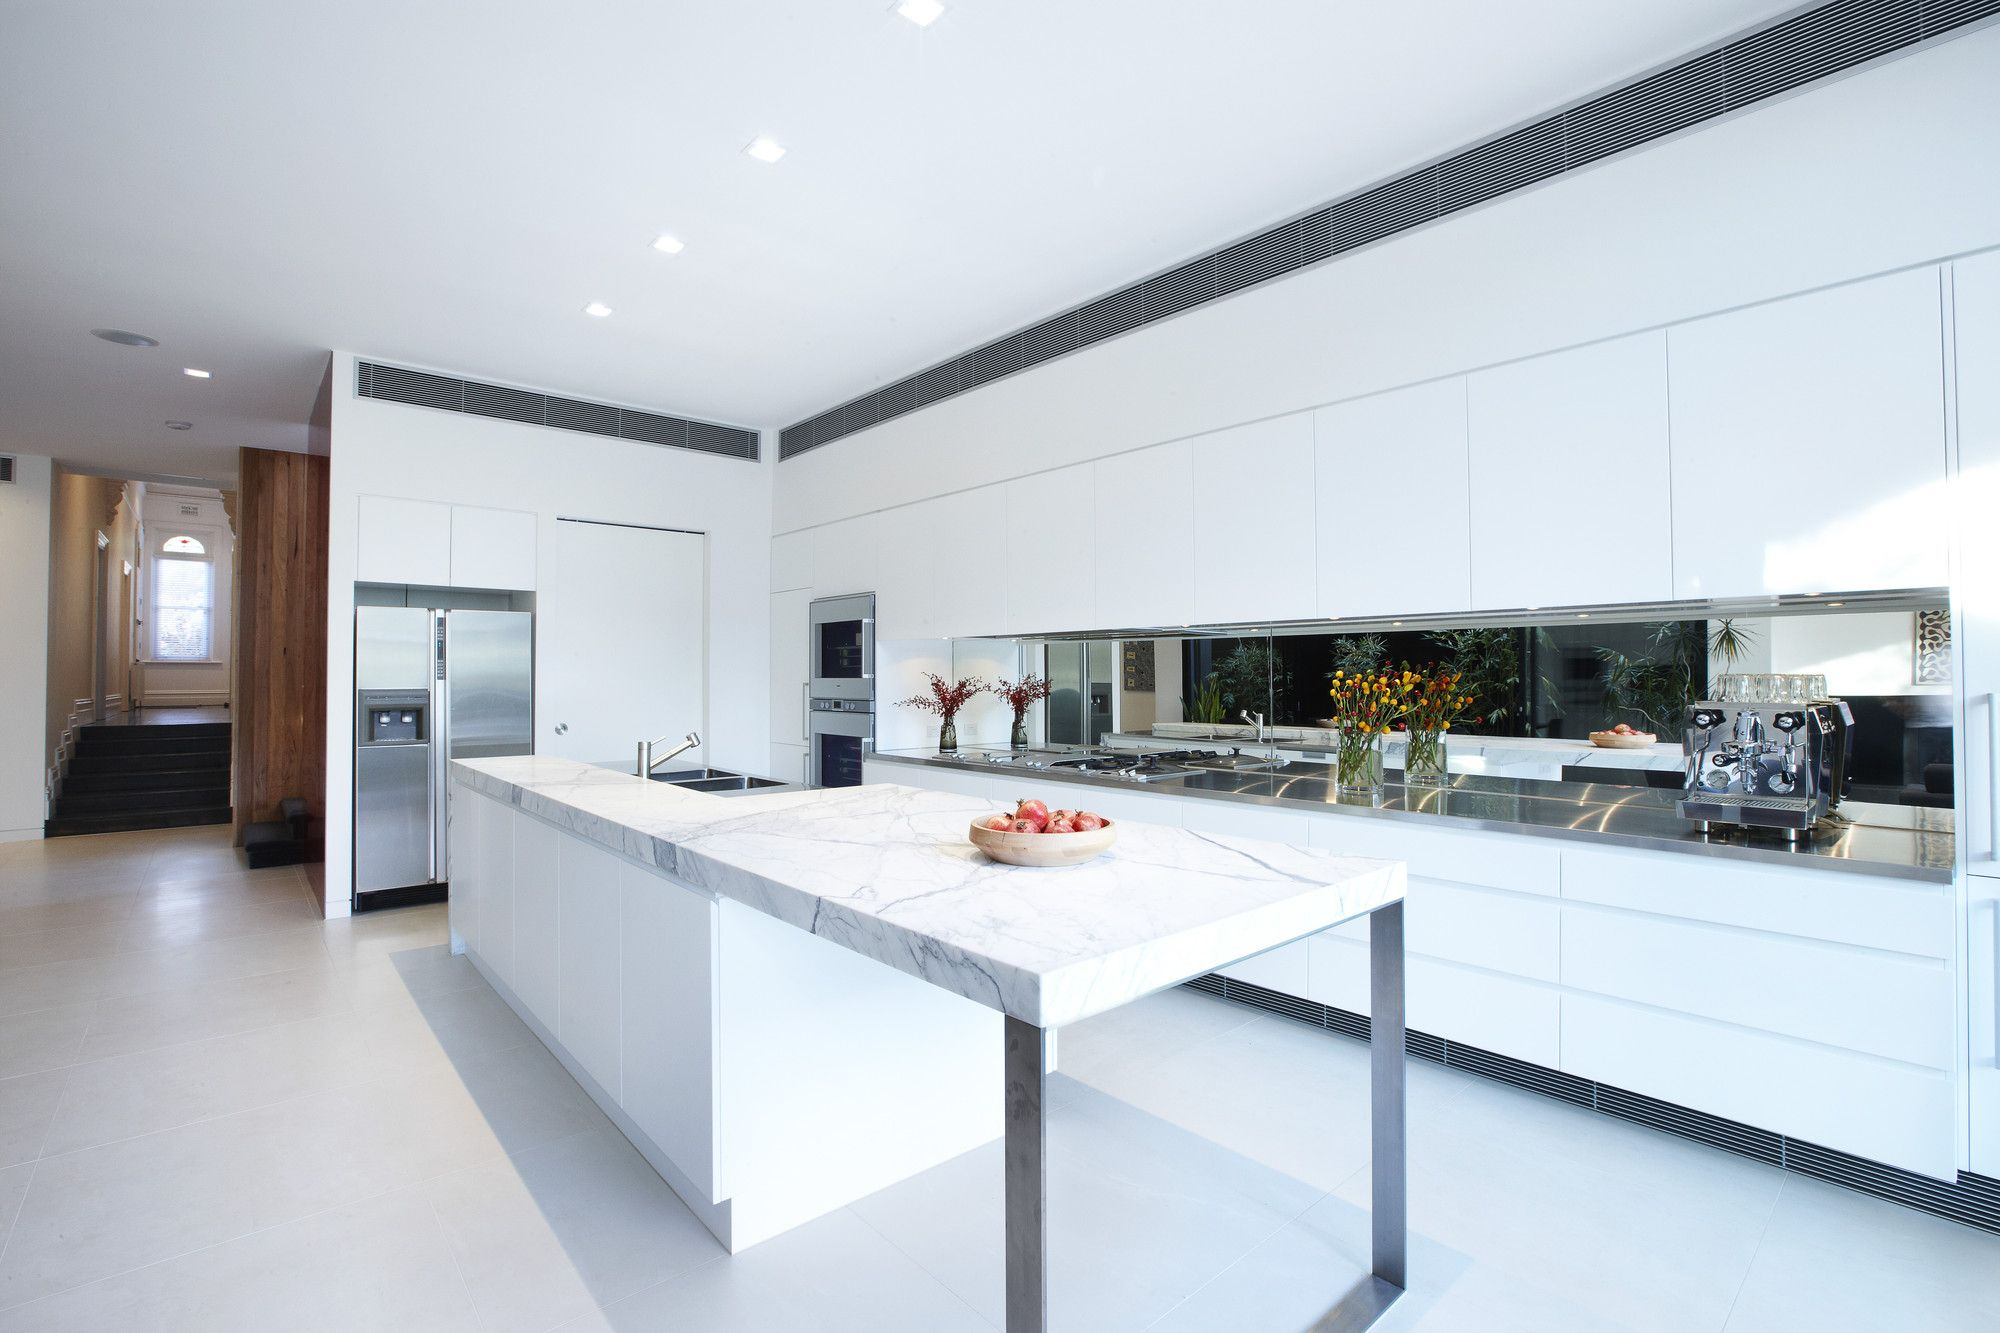 Gallery Of Enclave House  Bkk Architects  8  House Architects Alluring Kitchen Design Ideas Australia Inspiration Design